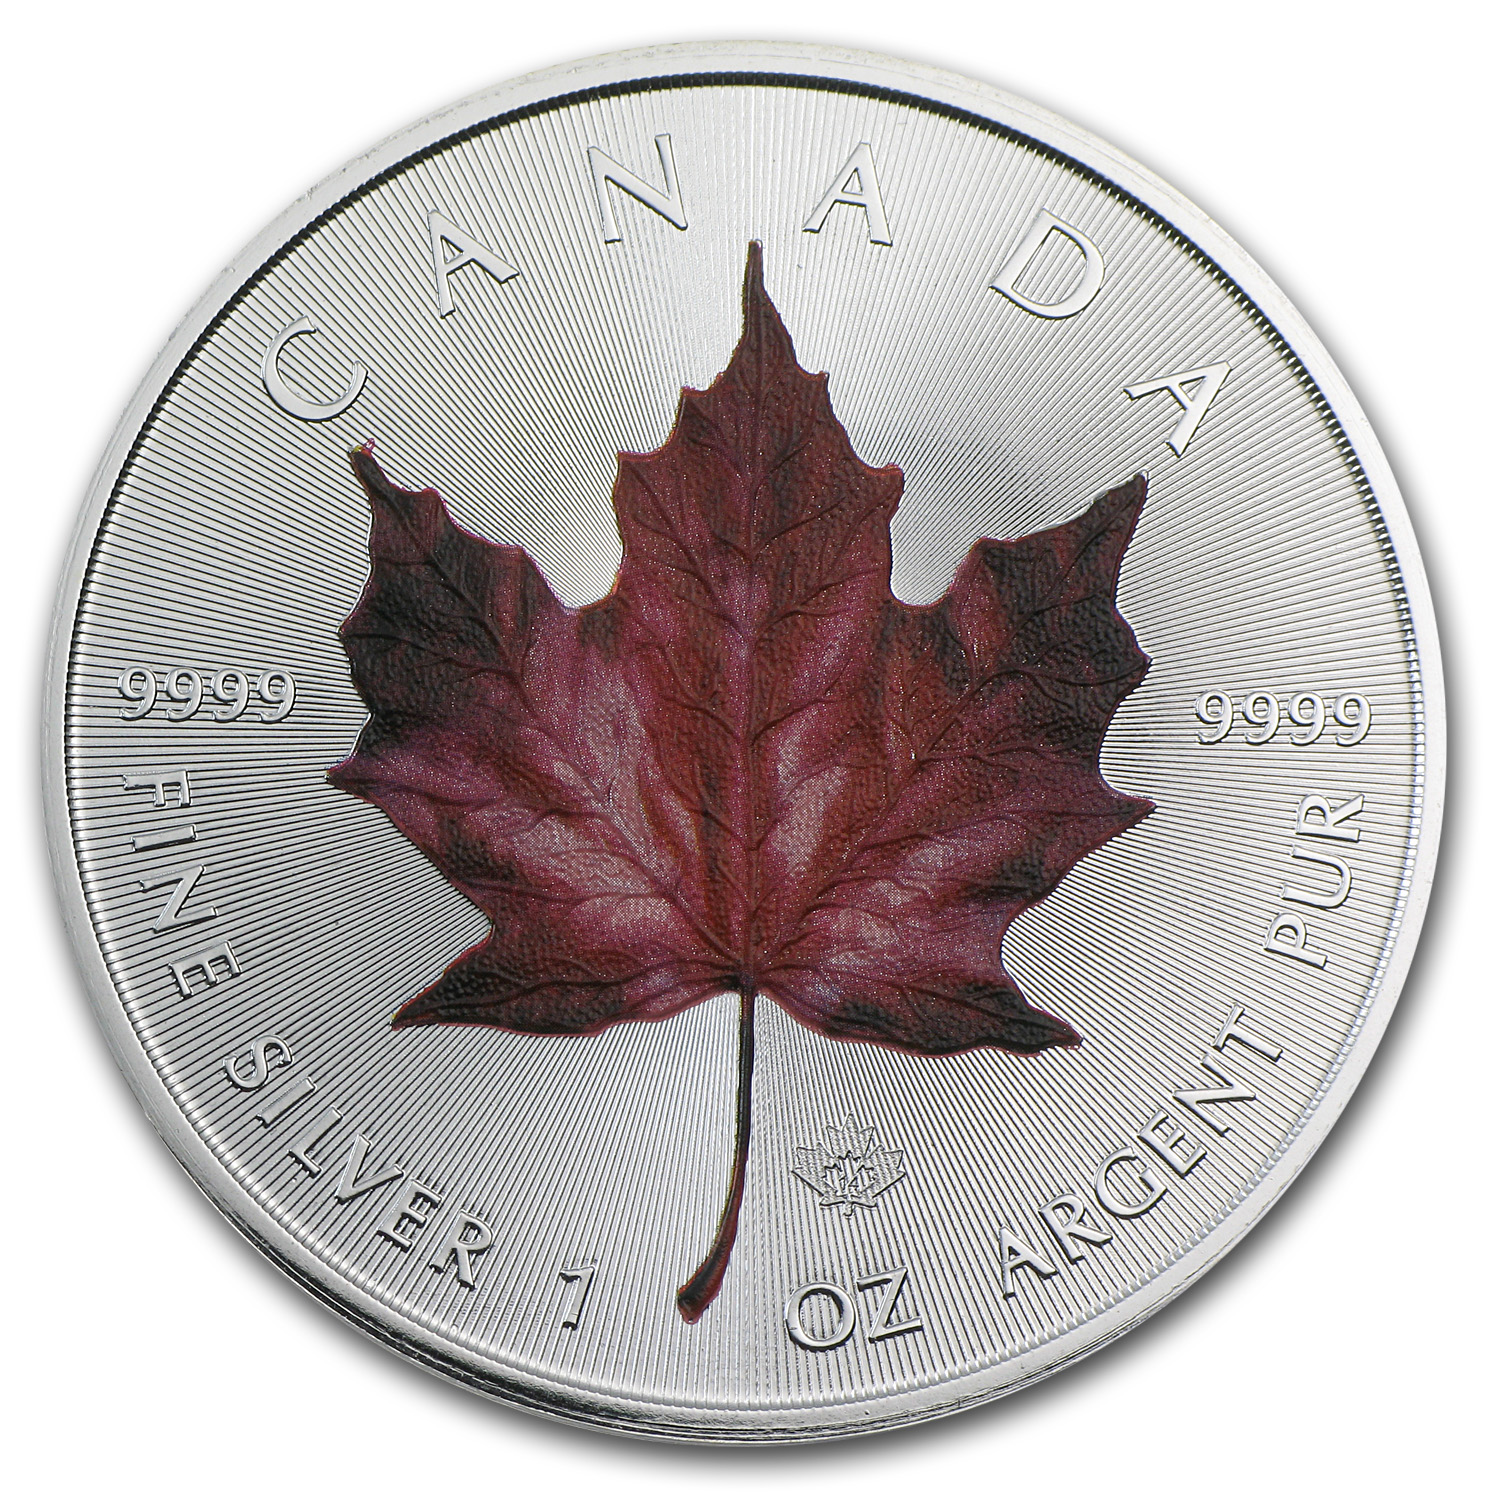 2014 1 oz Silver Canadian Maple Leaf - Red Maple Leaf